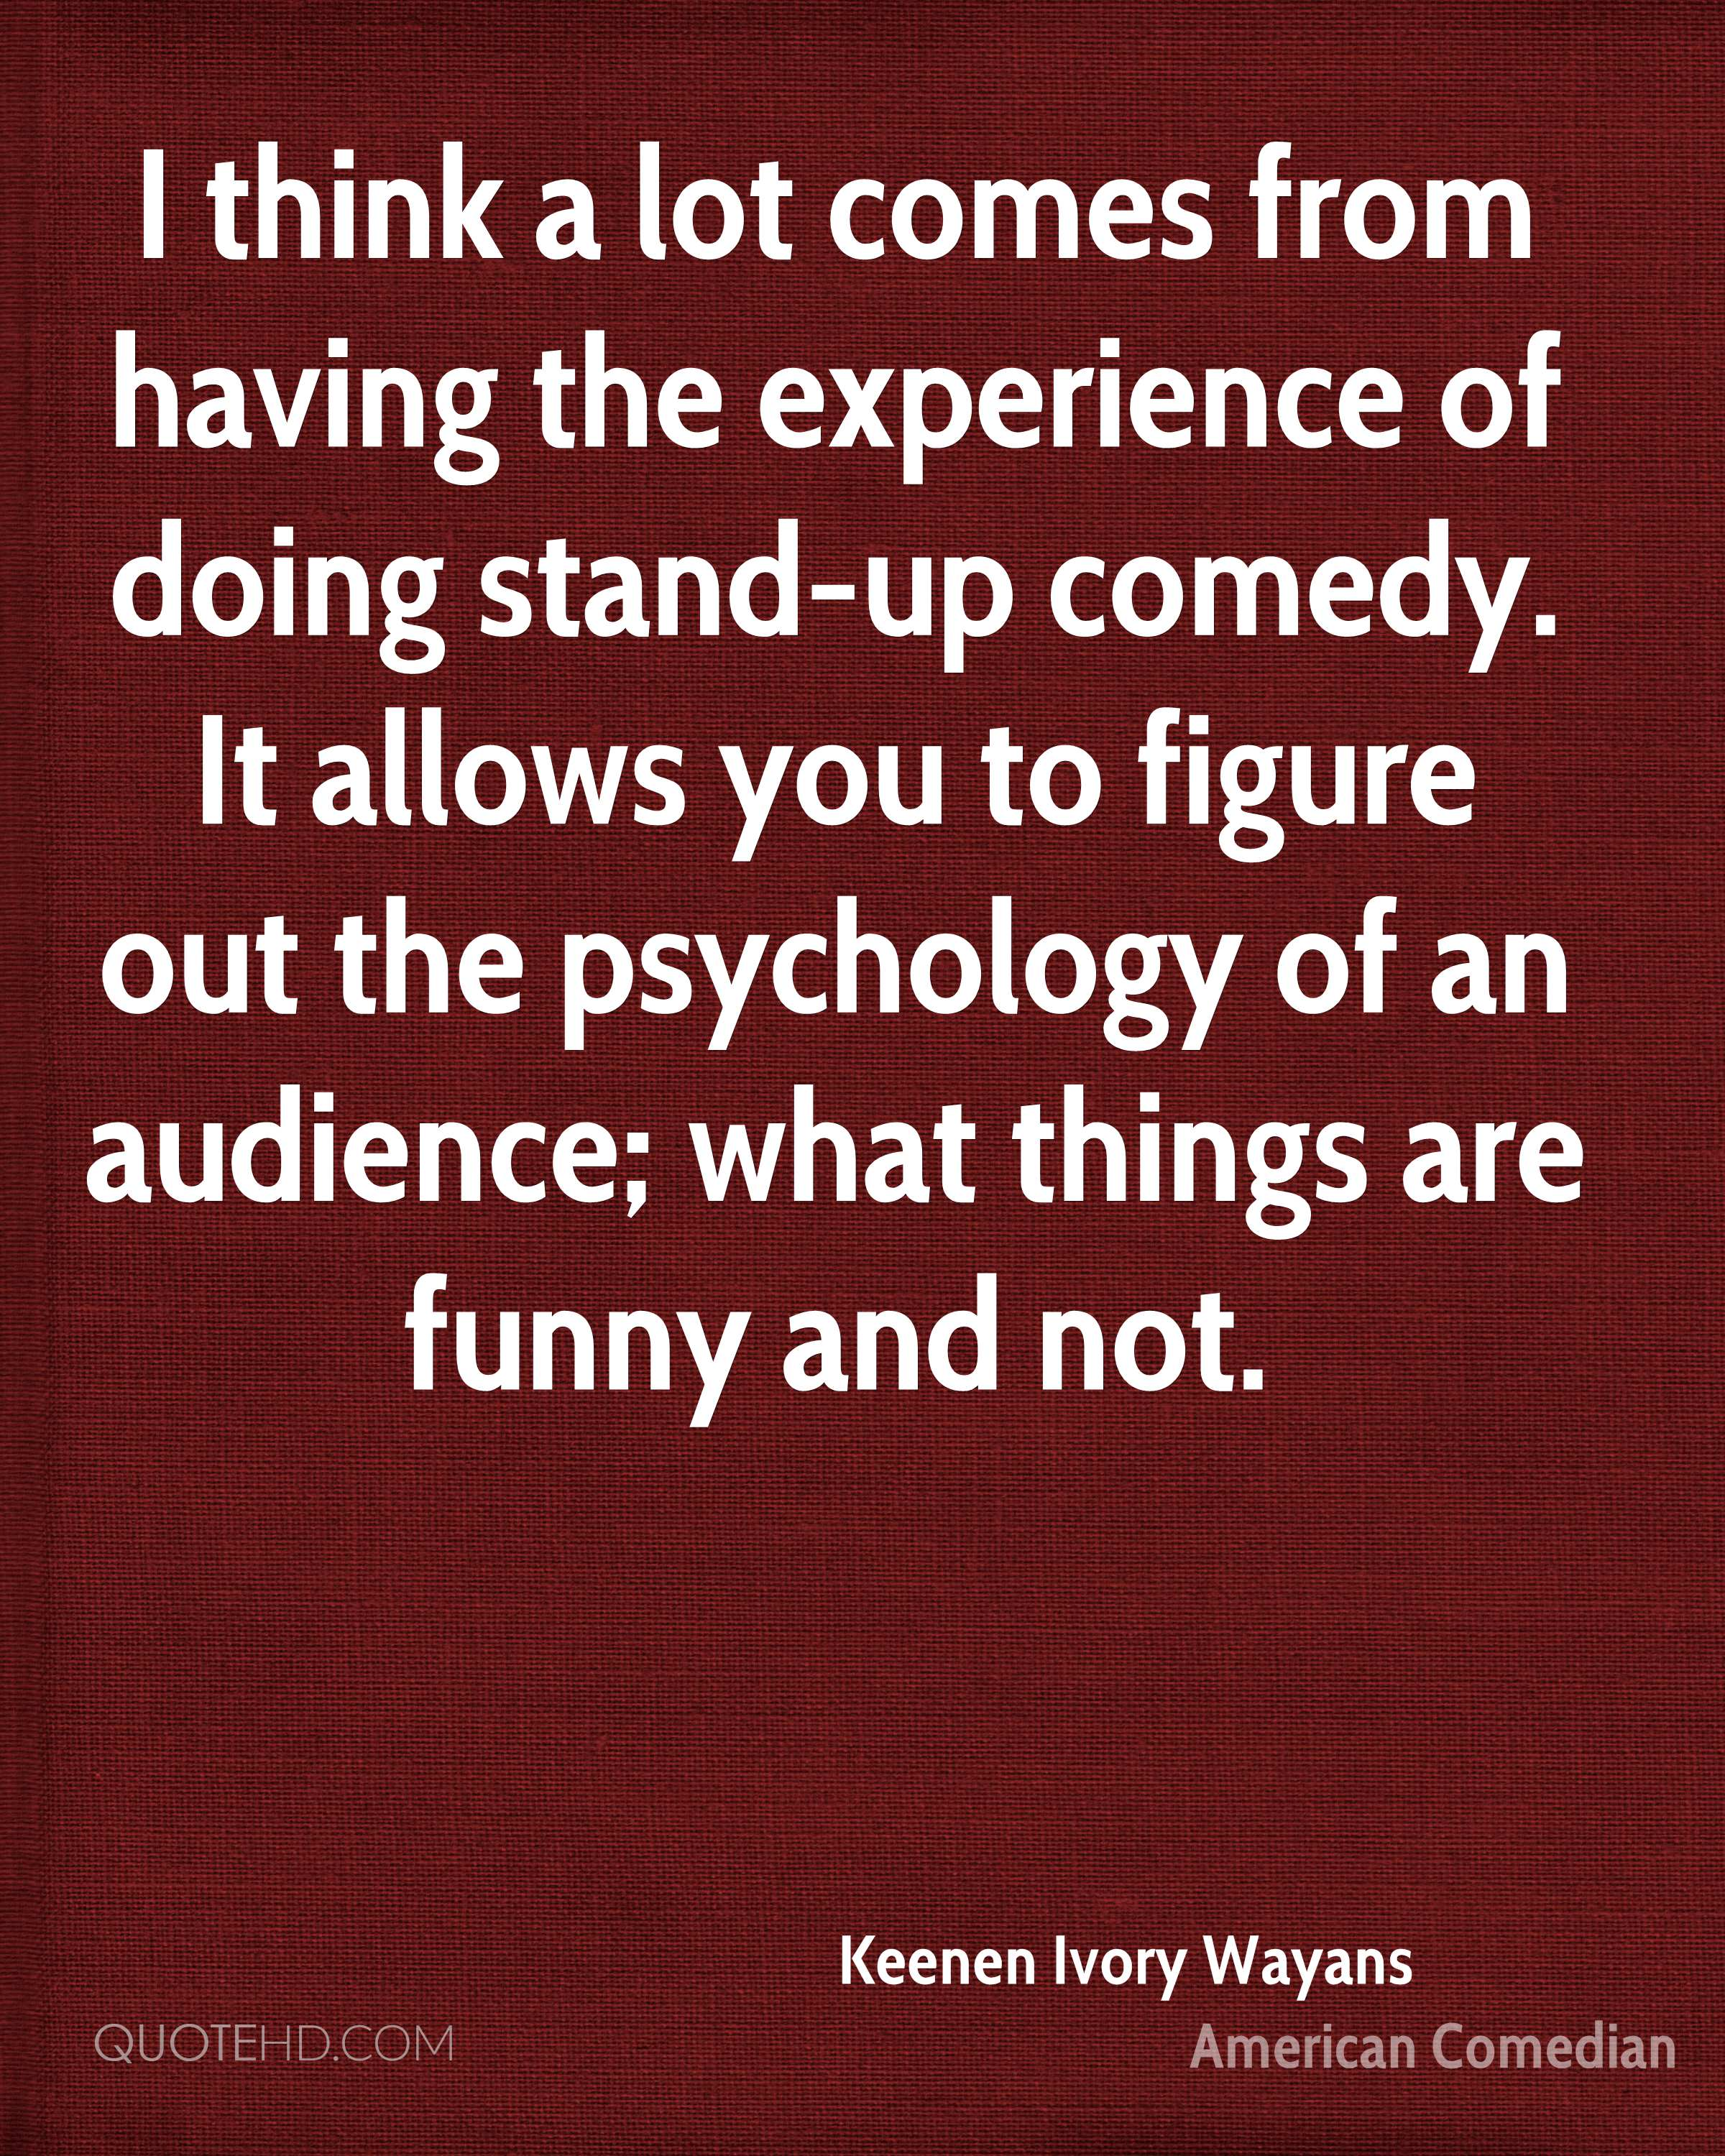 I think a lot comes from having the experience of doing stand-up comedy. It allows you to figure out the psychology of an audience; what things are funny and not.